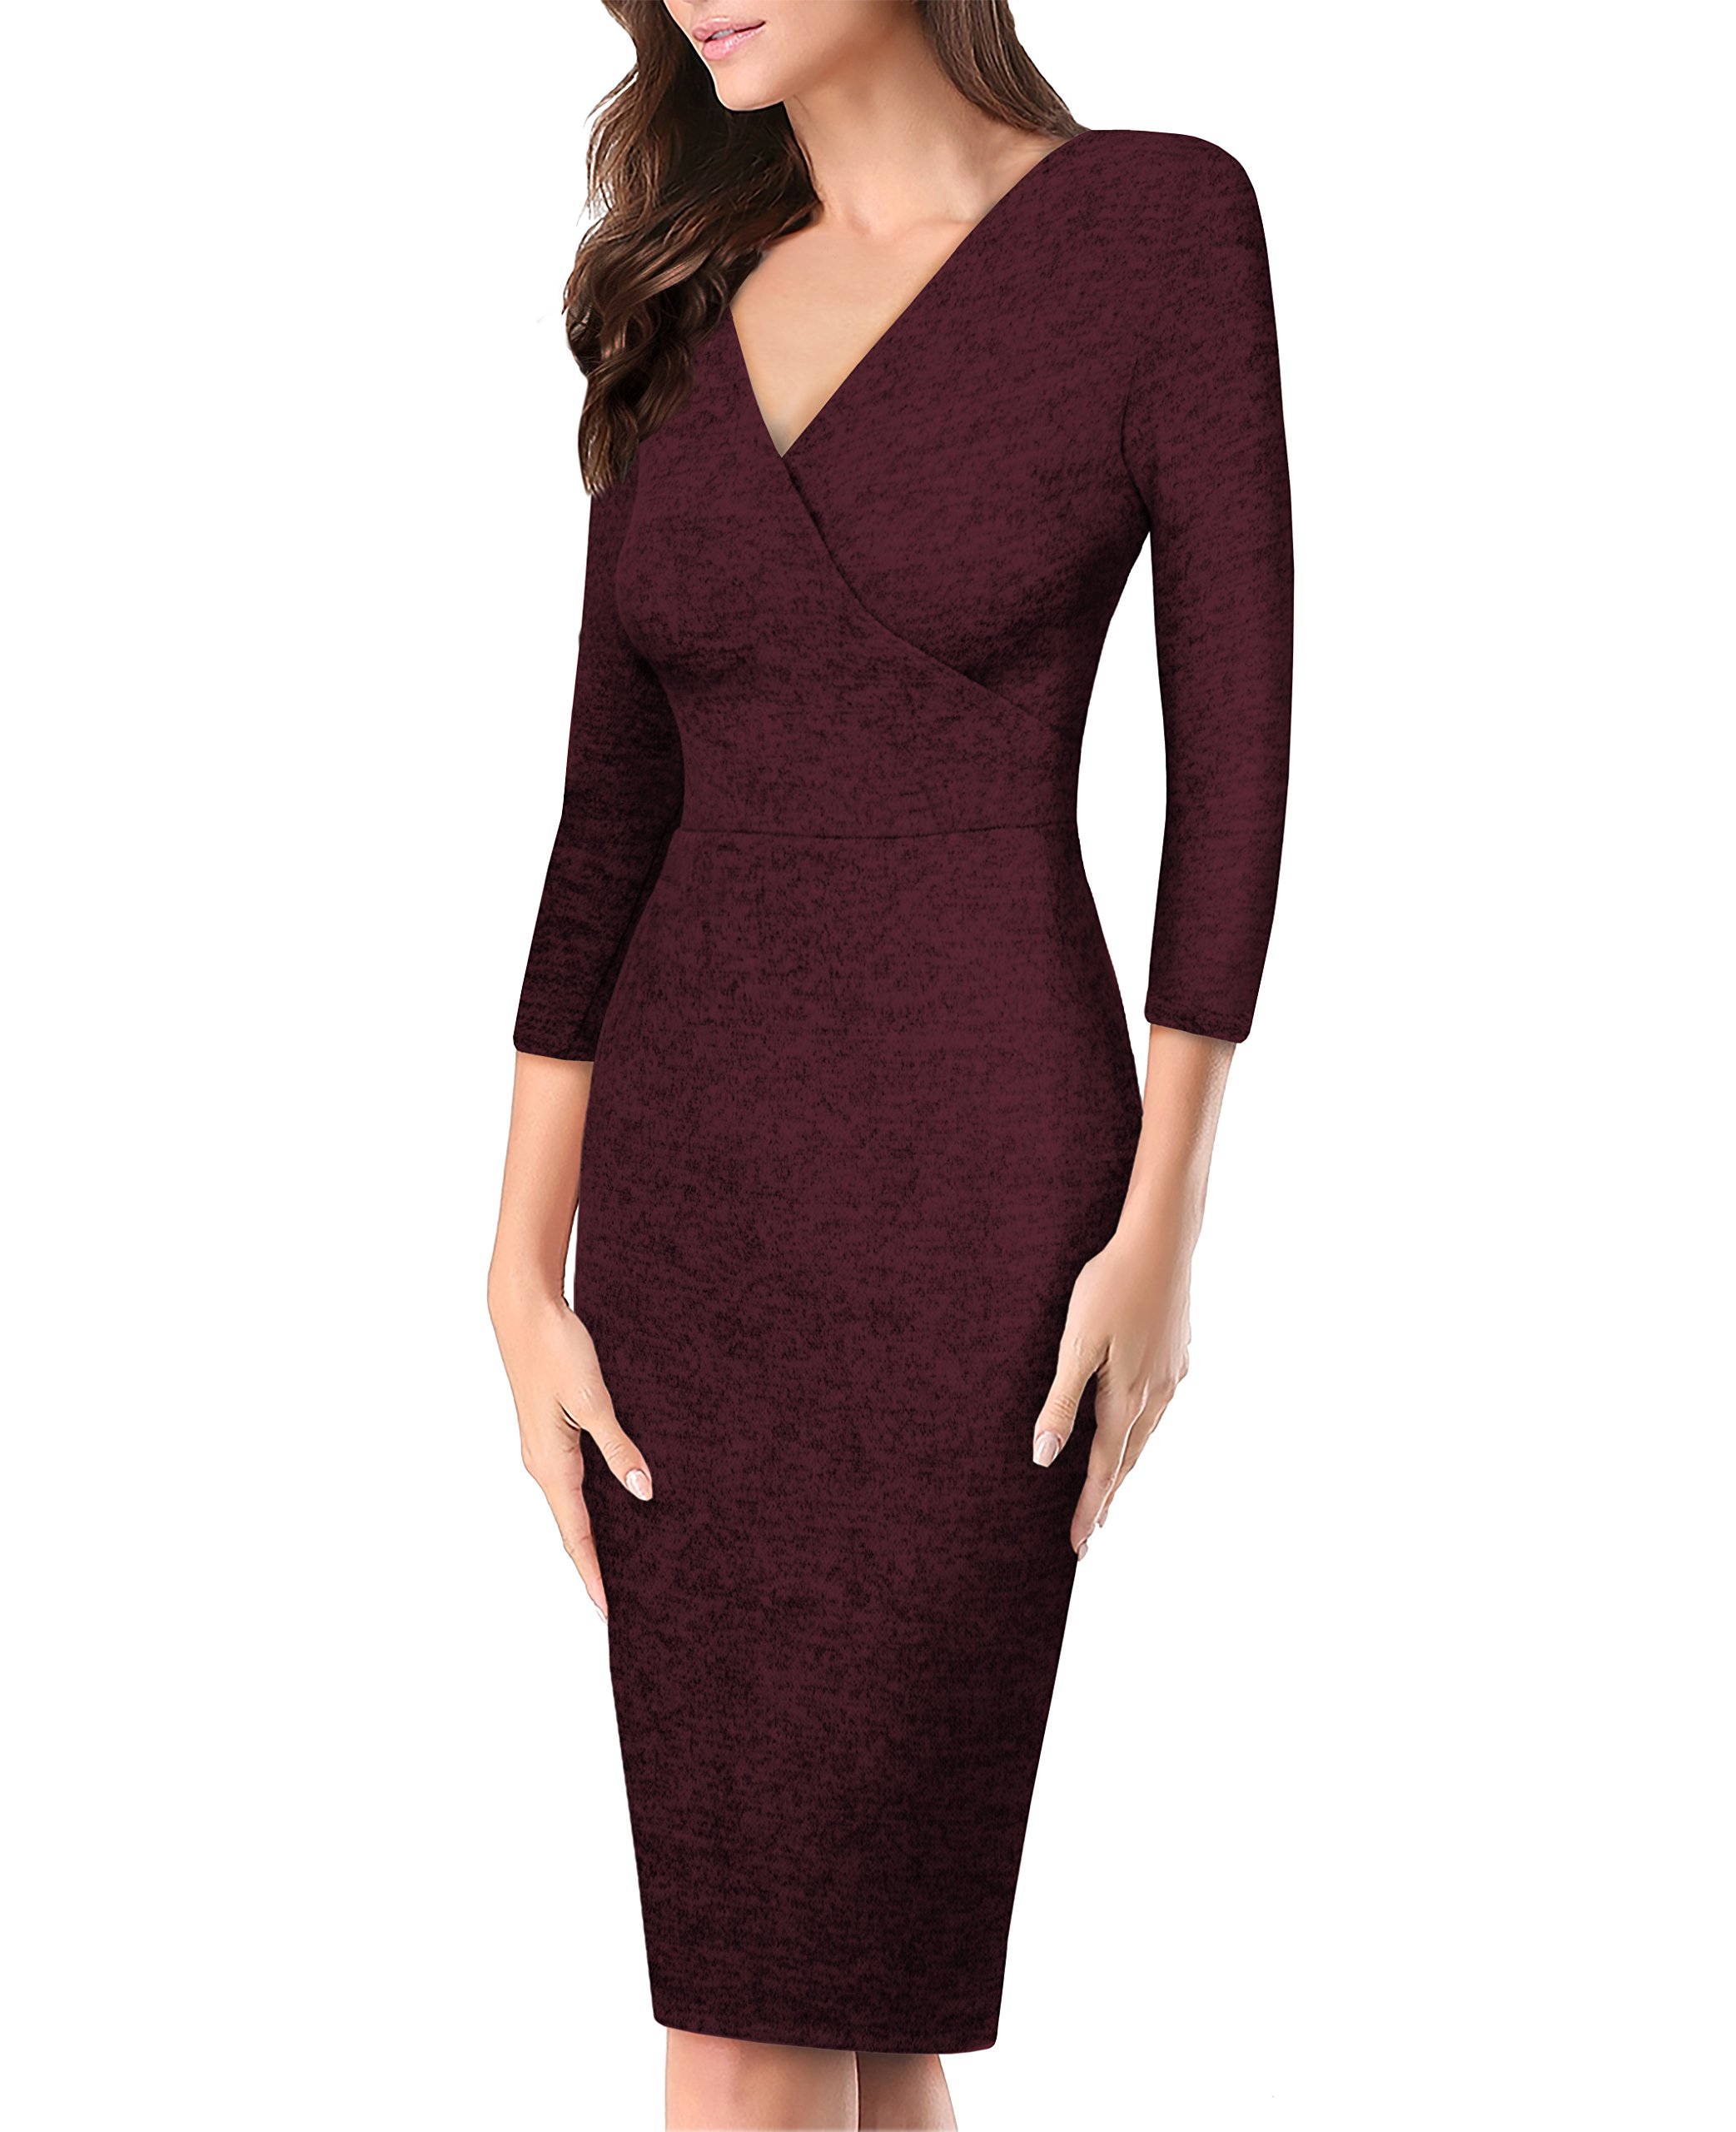 Women's Plum Cross V Neck Midi Dress KDR44322 G4000 Burgundy XLarge